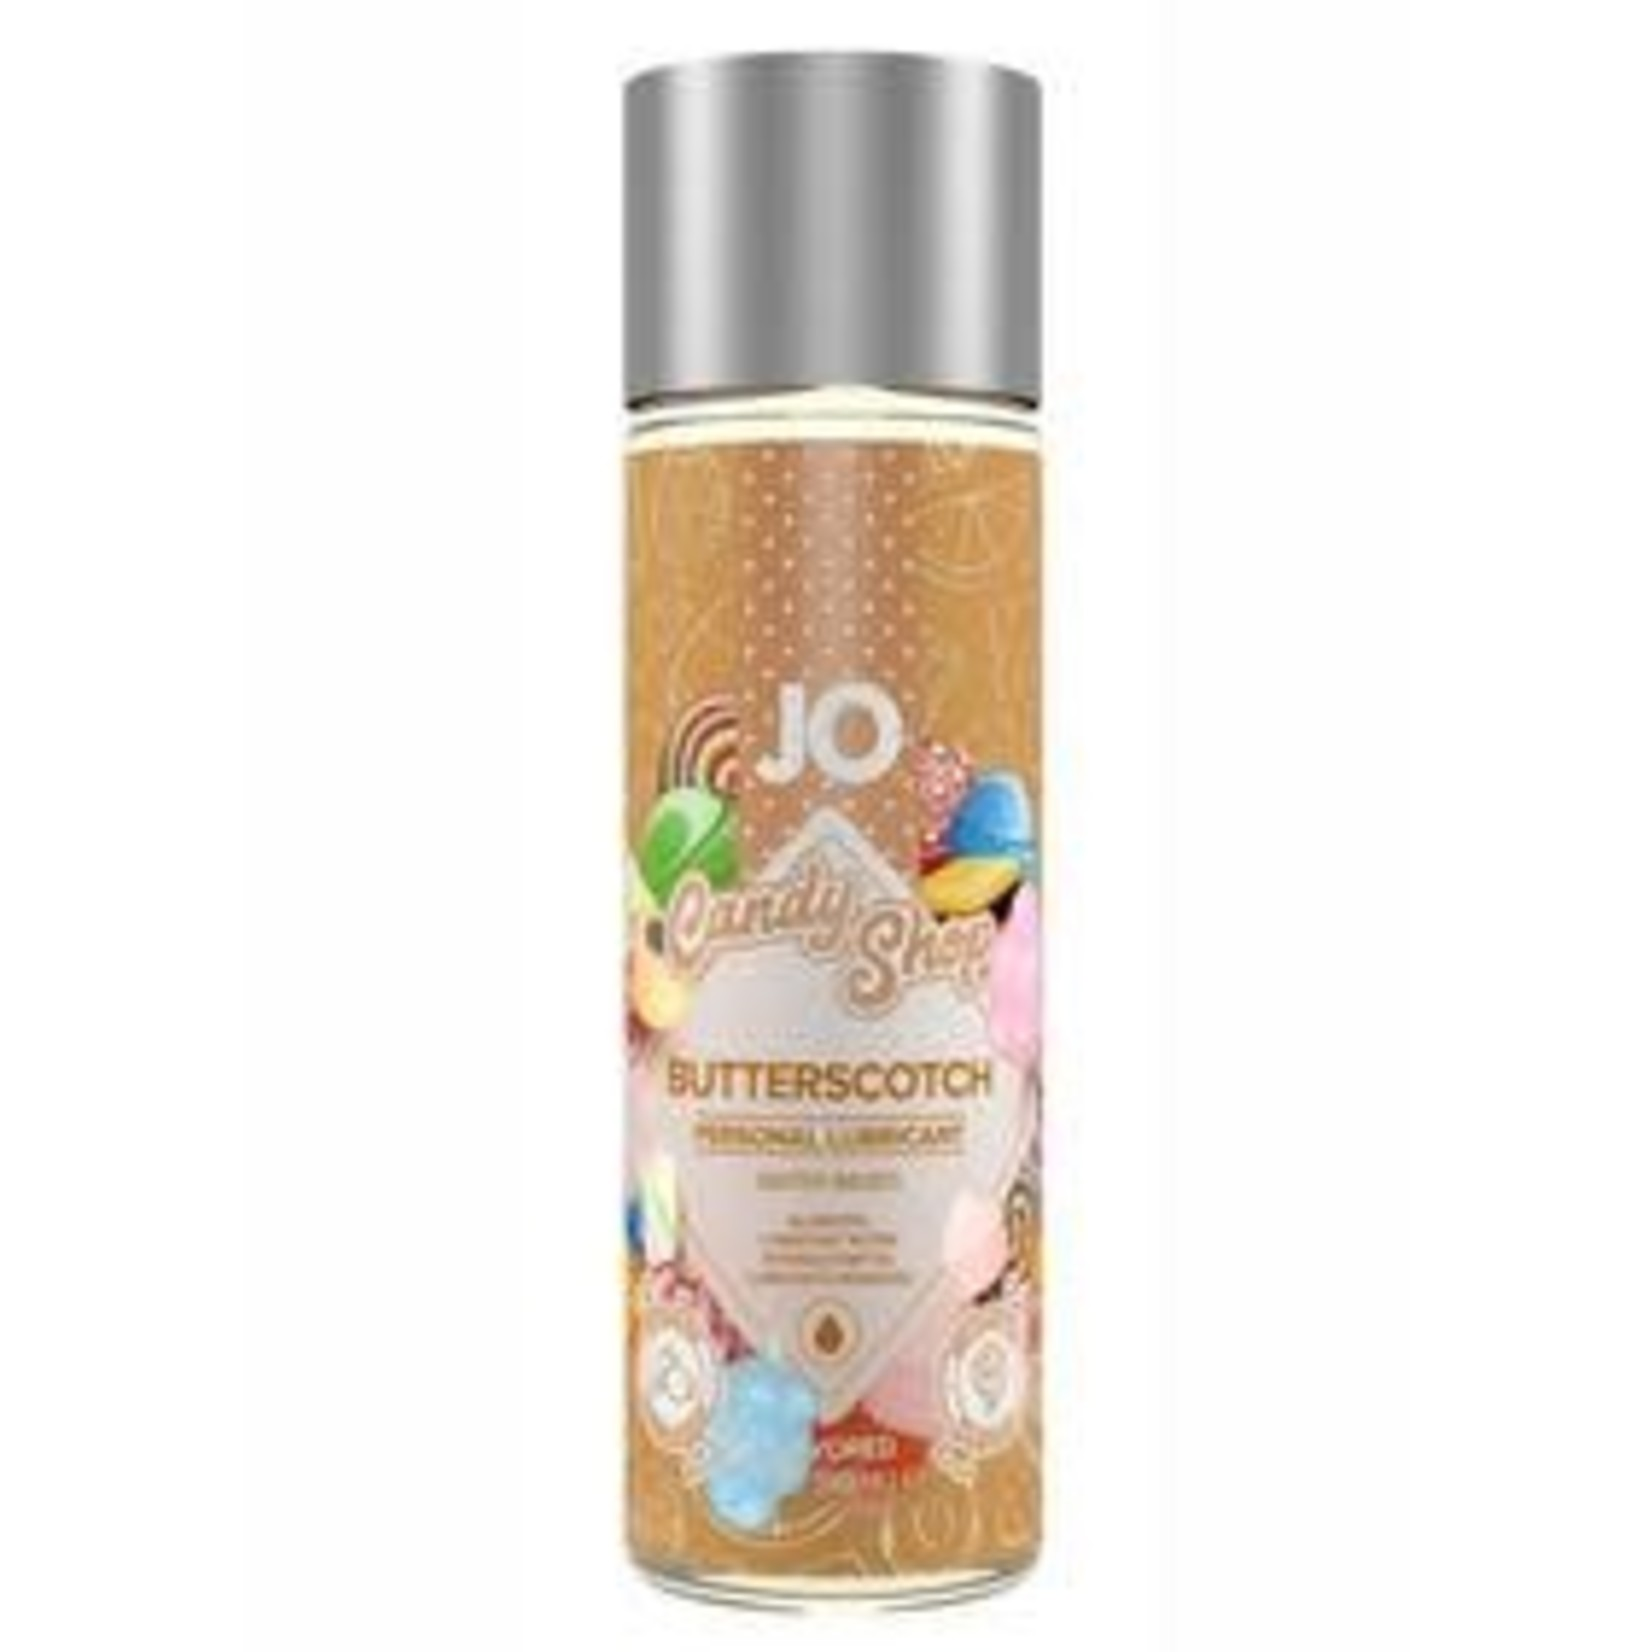 Jo Candy Shop Water Based Flavored Lubricant Butterscotch 2 Ounce